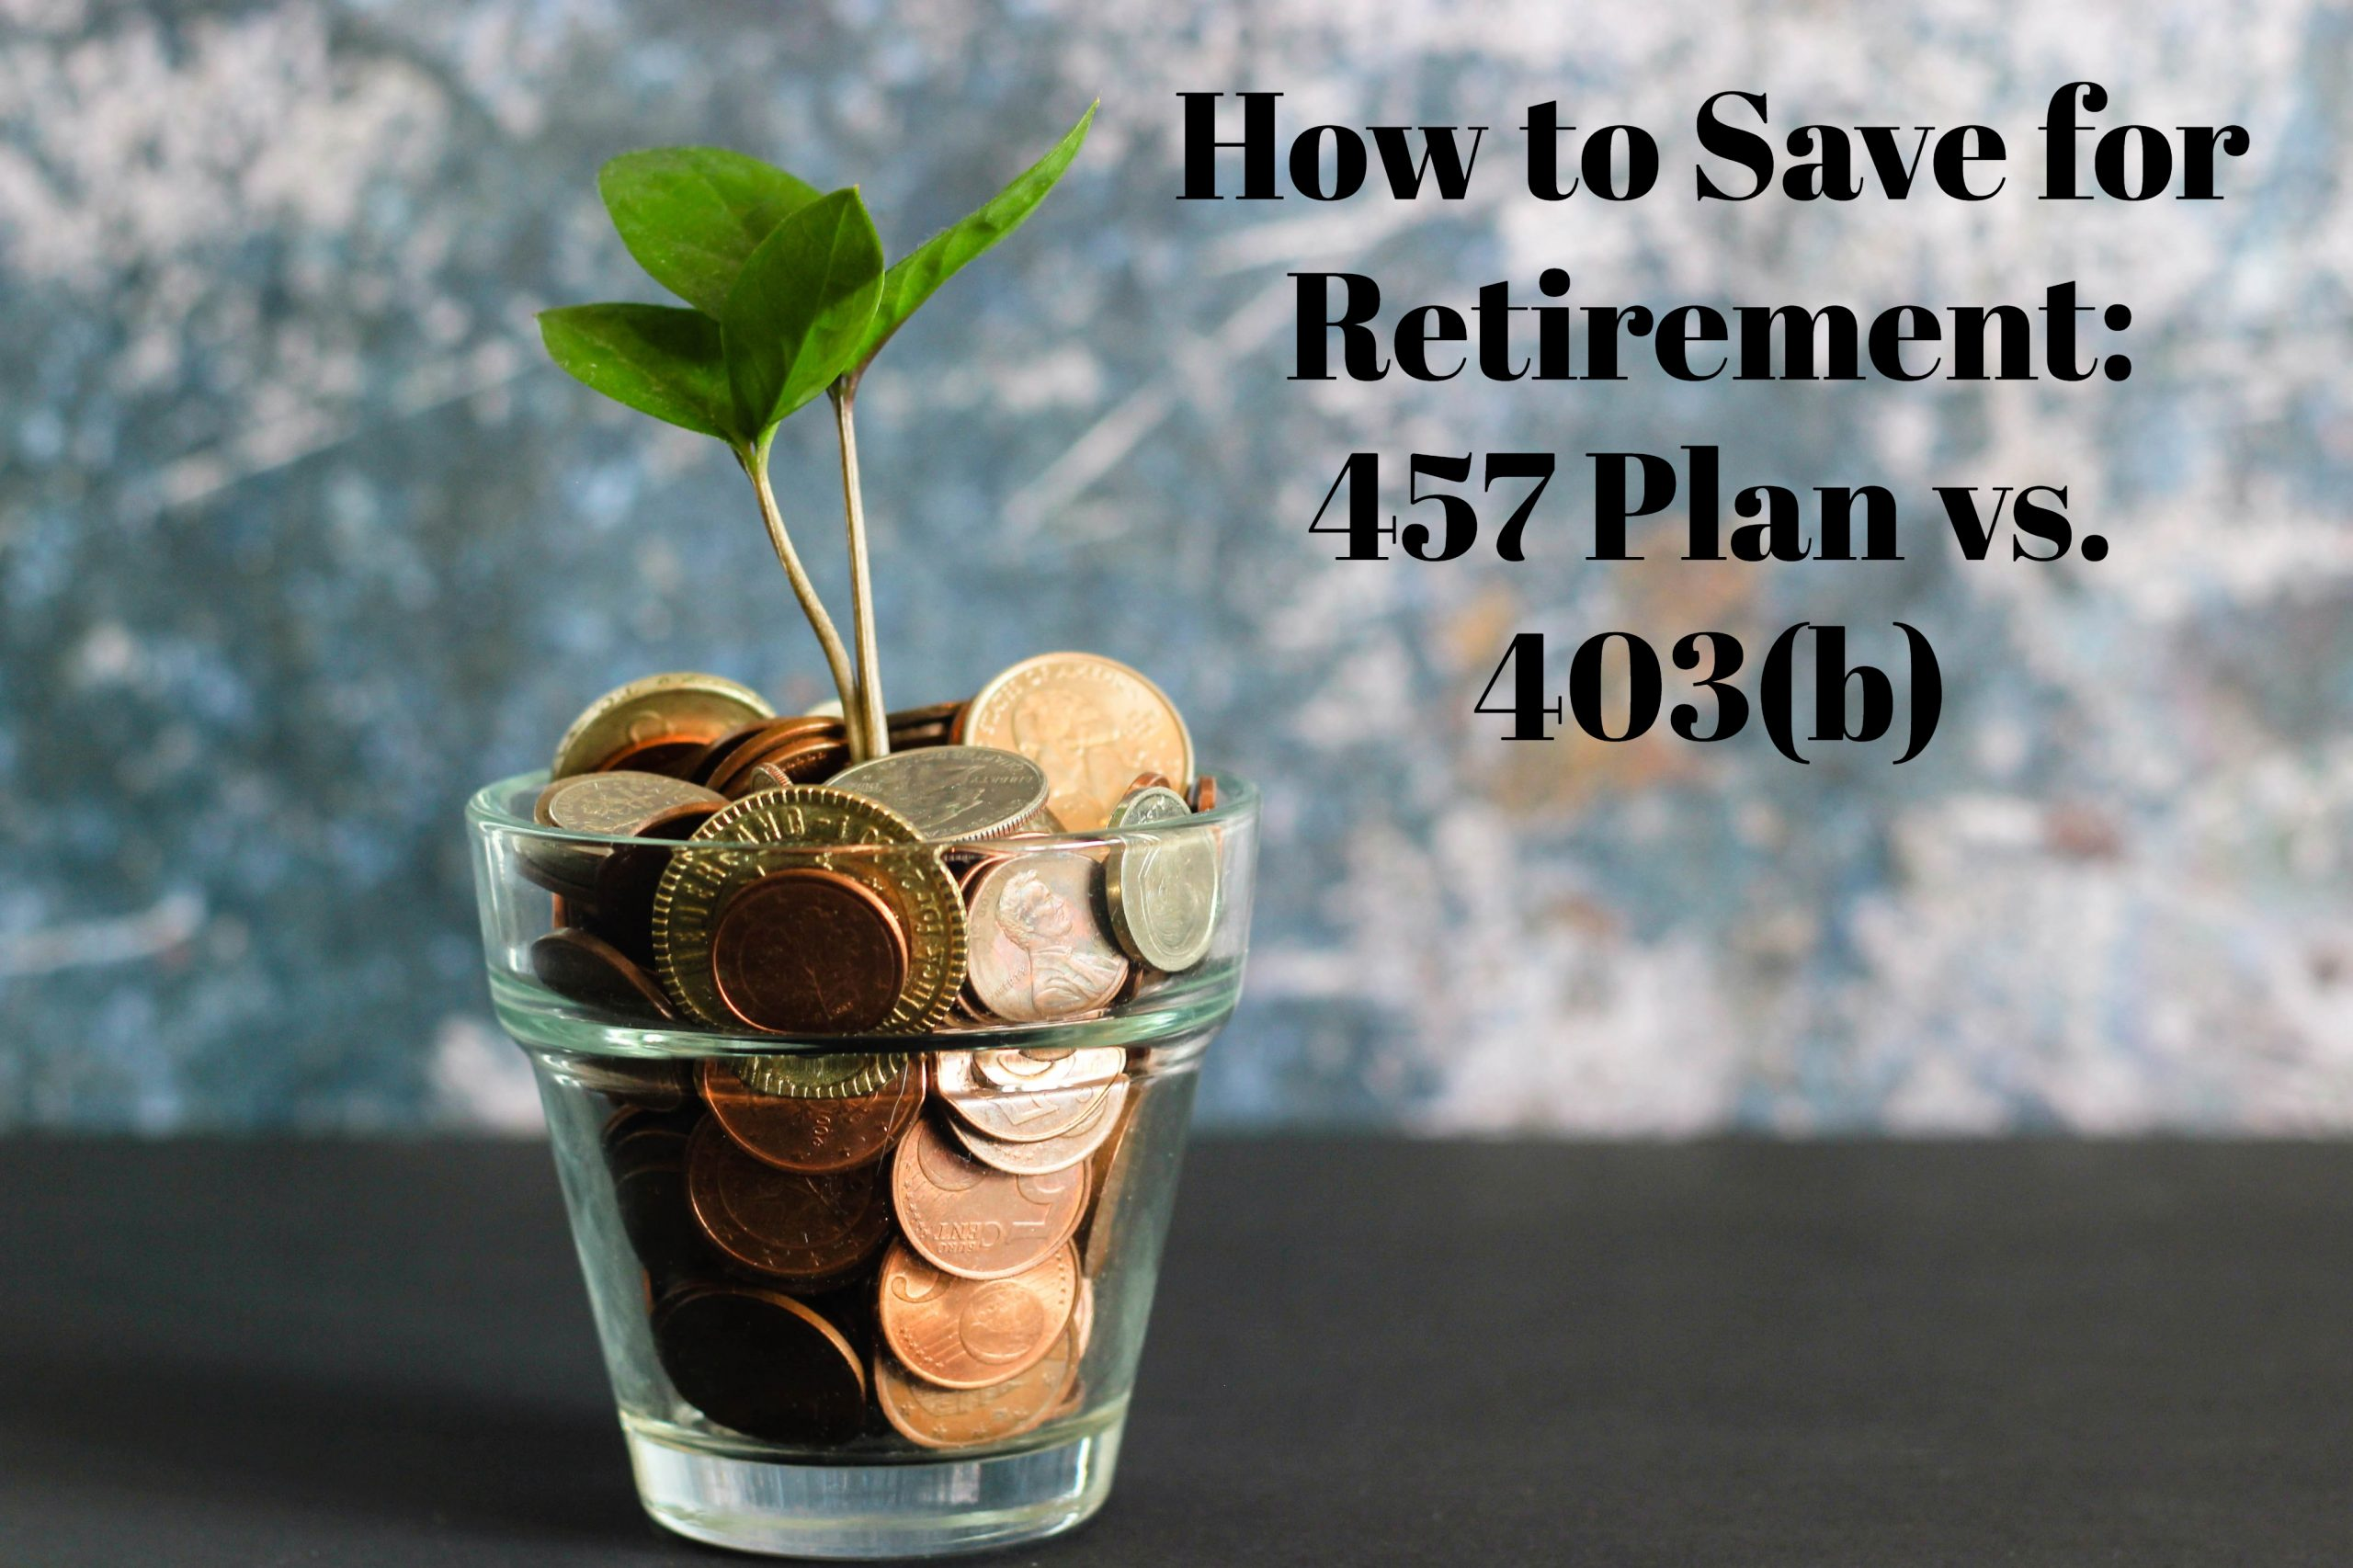 How to Save for Retirement: 457 Plan vs. 403(b)